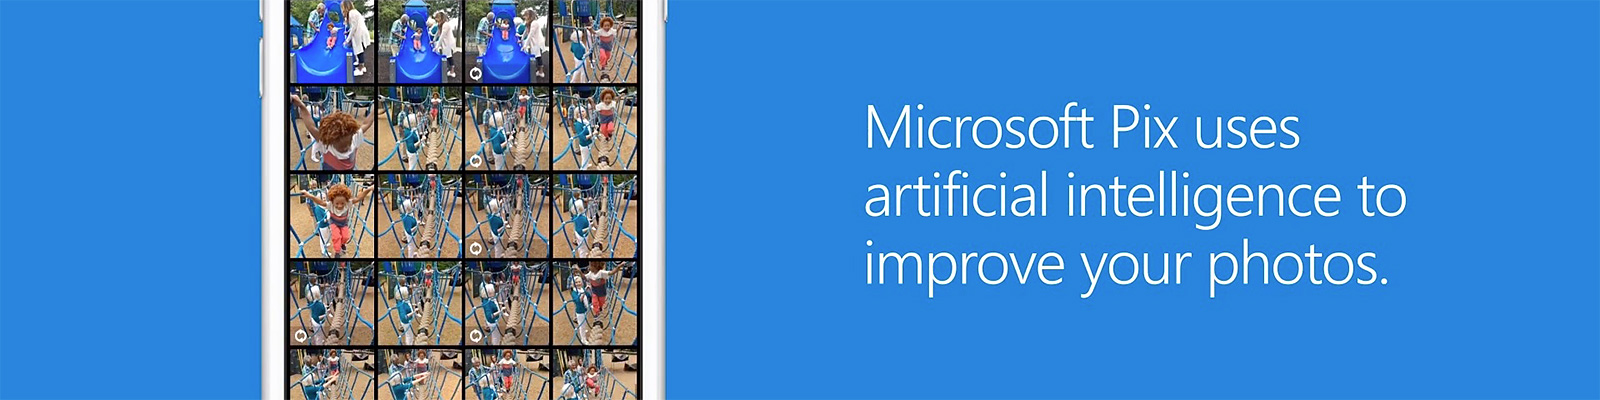 Introducing Microsoft Pix – A Smarter Camera App(Microsoft Research)